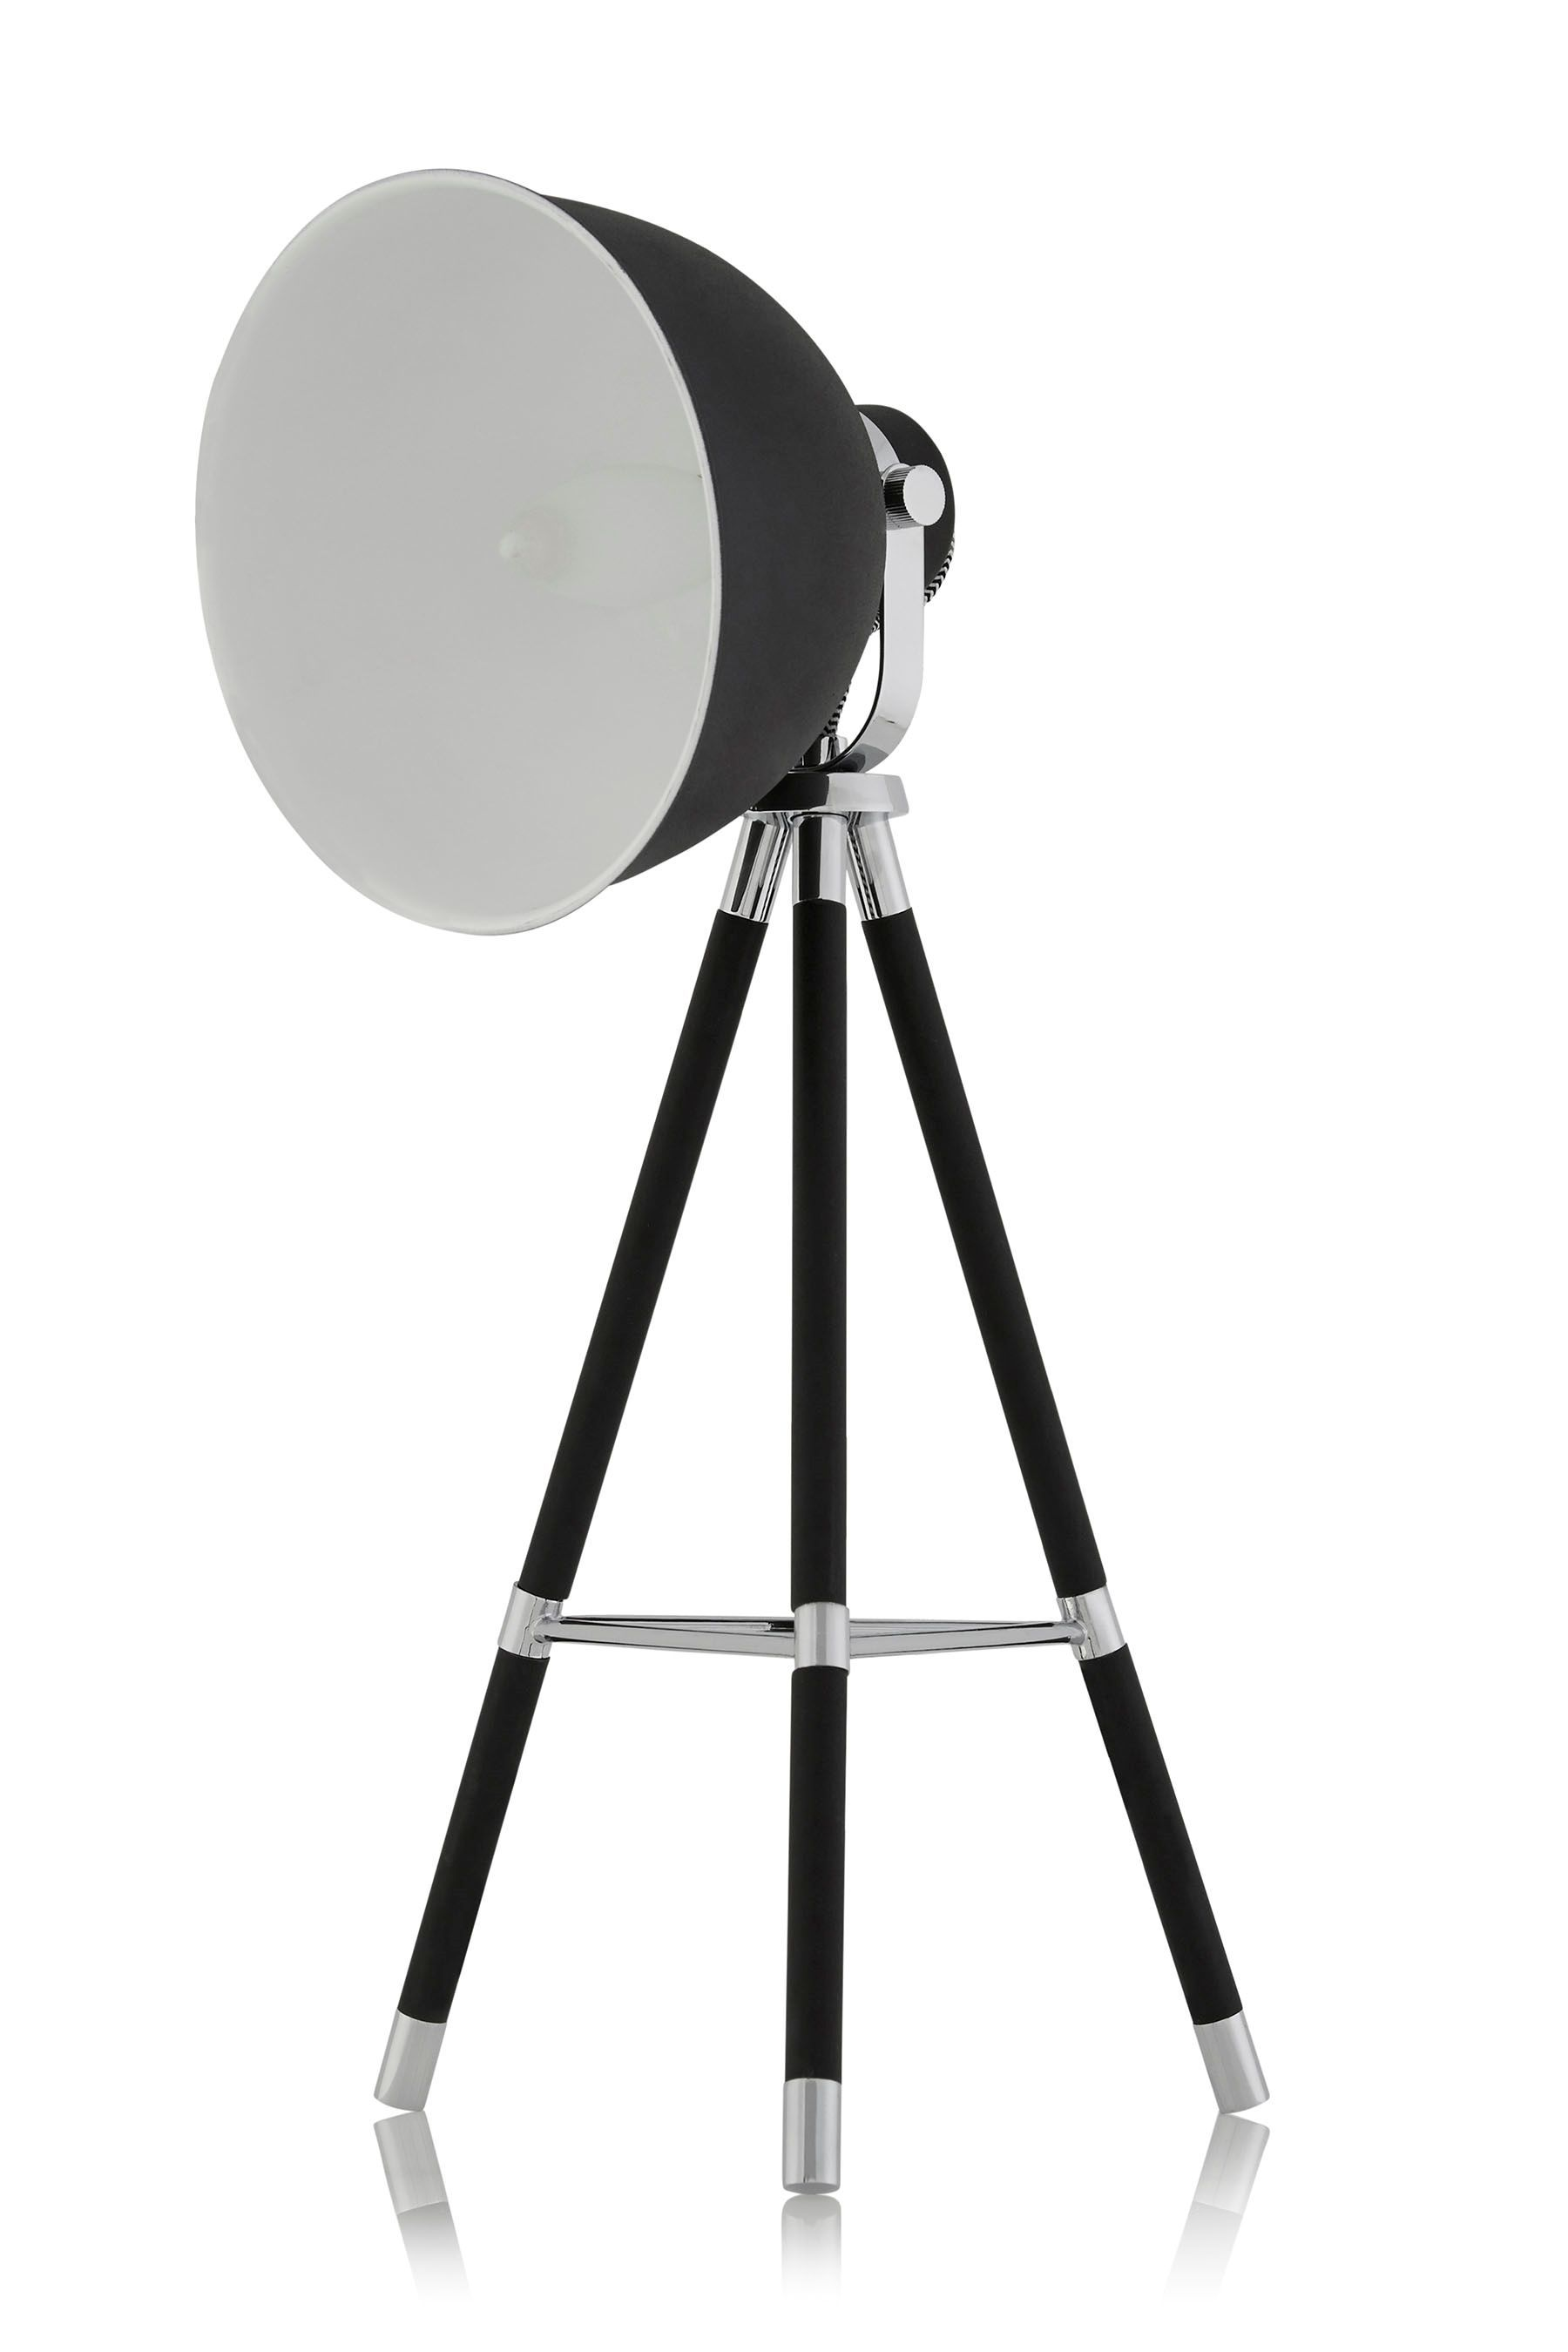 Buy studio textured black and chrome tripod table lamp from the buy studio textured black and chrome tripod table lamp from the next uk online shop mozeypictures Image collections